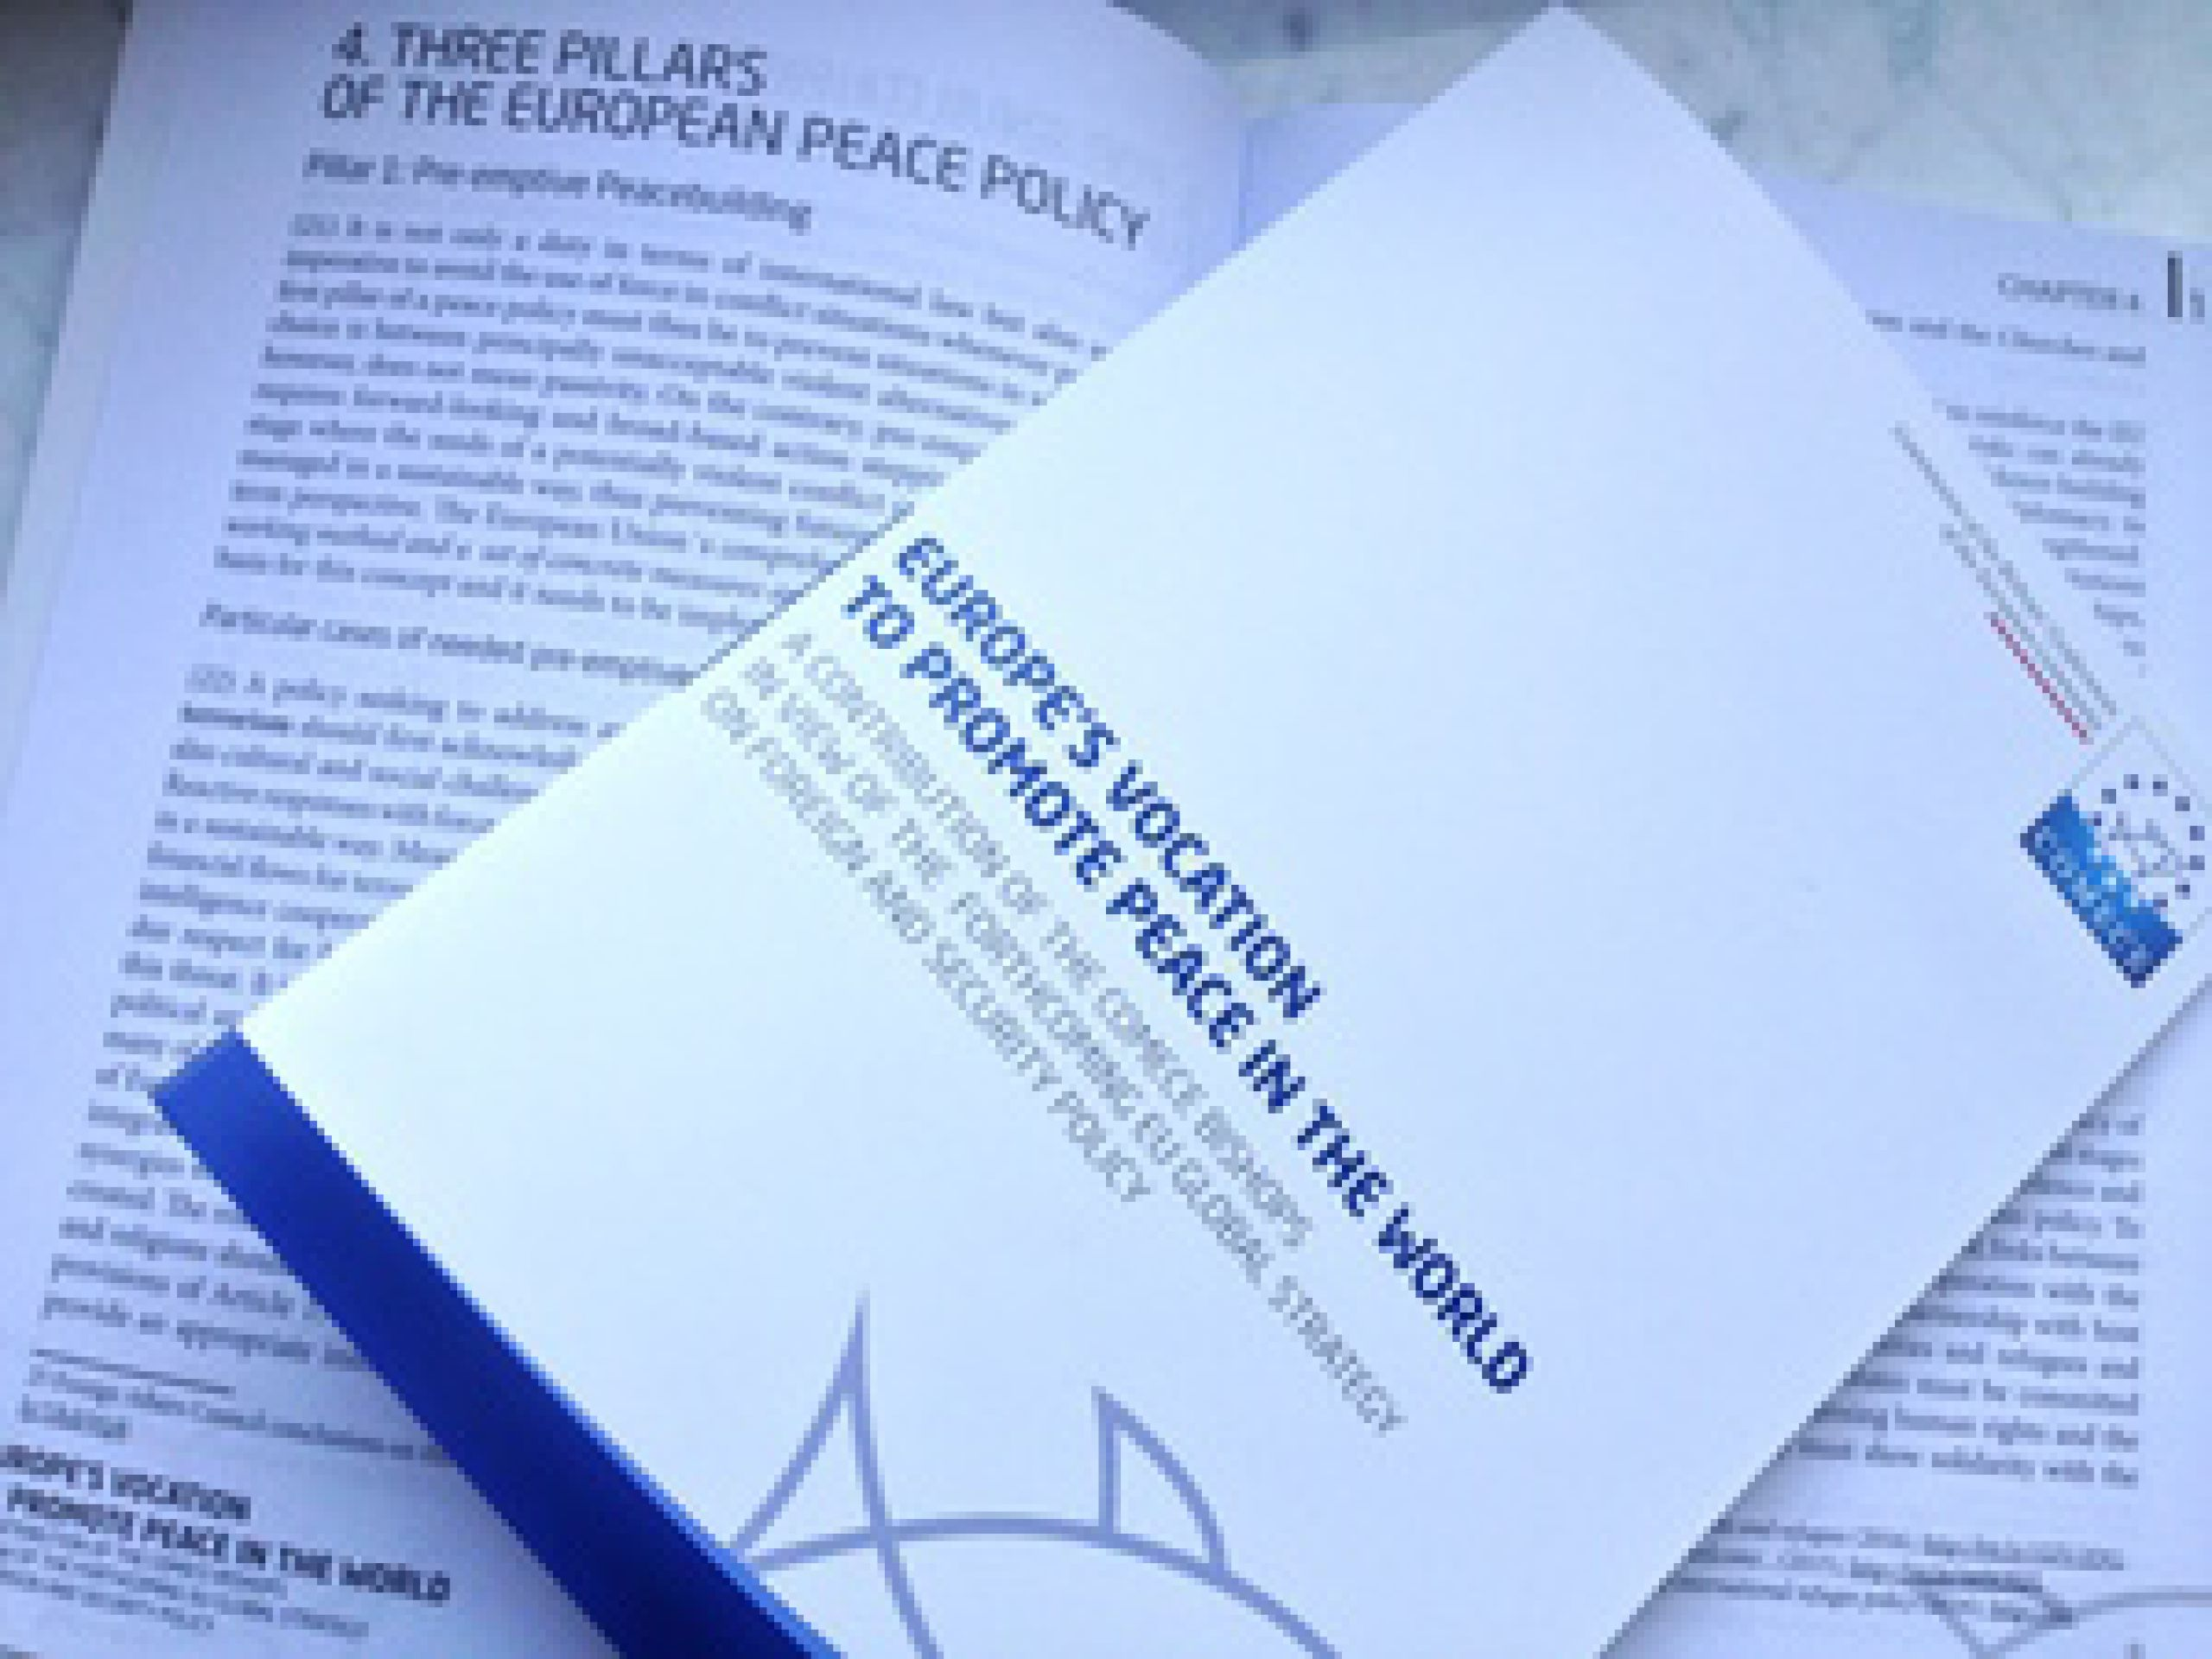 Europe's Vocation to Promote Peace in the World